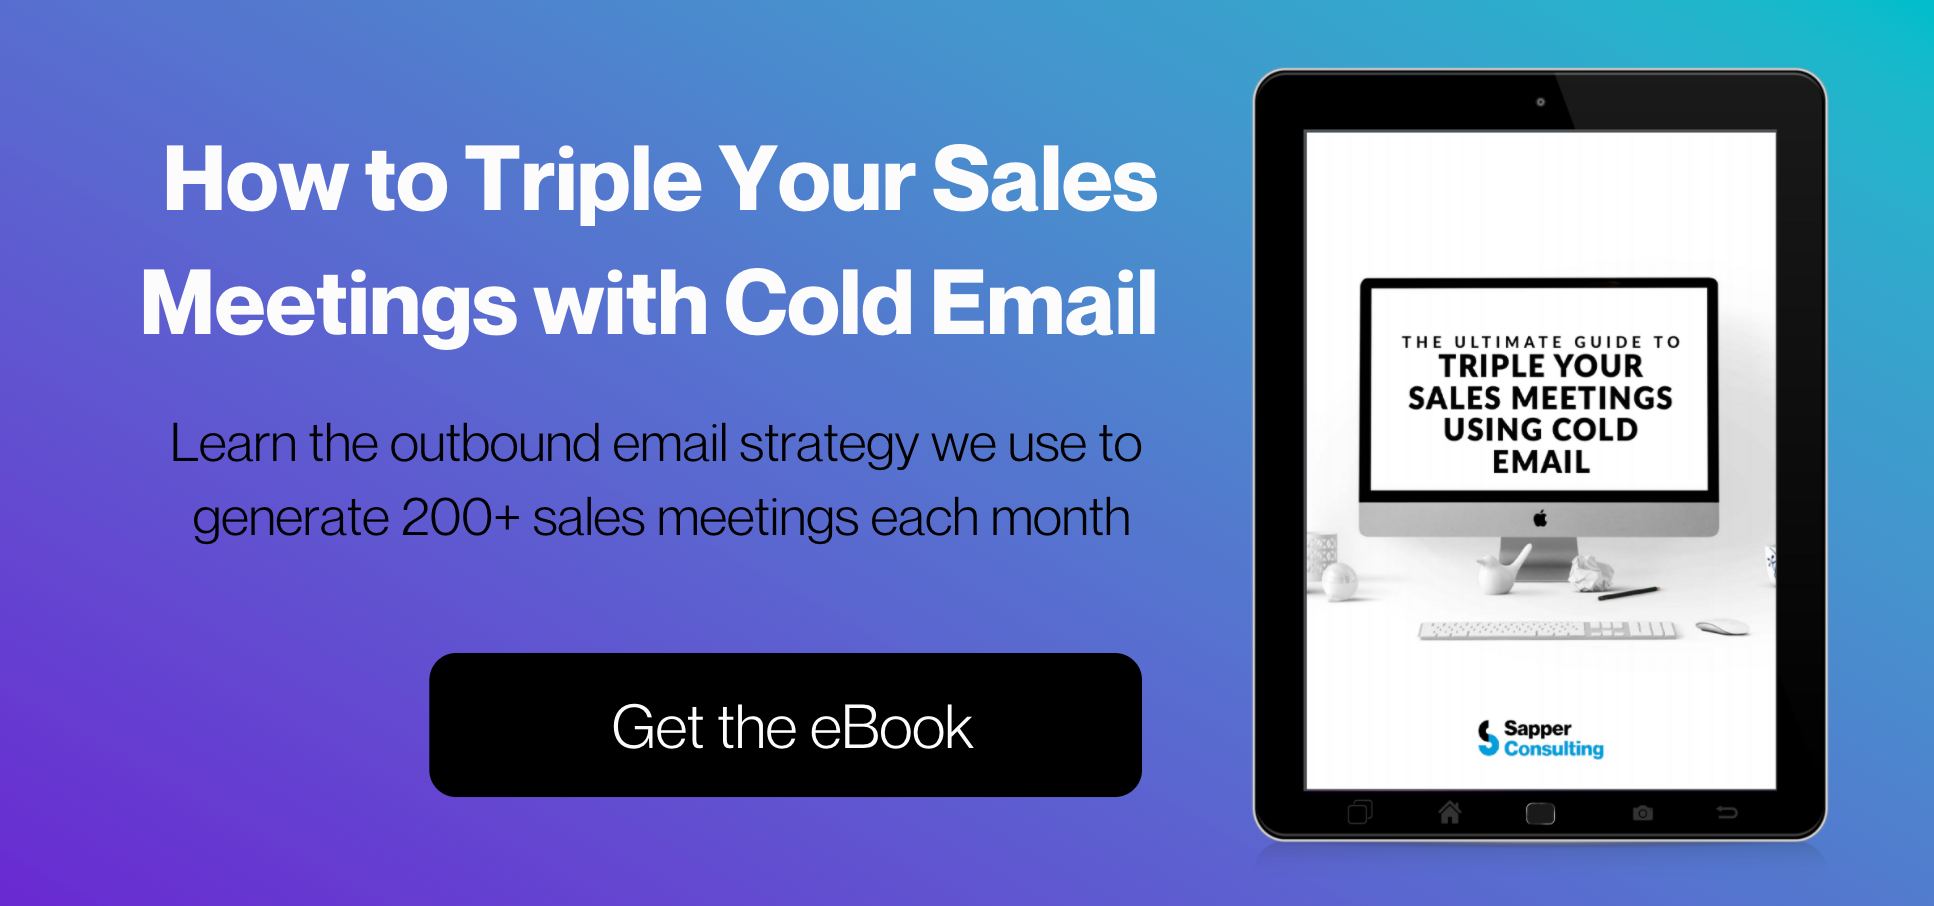 How to Triple Your Sales Meetings